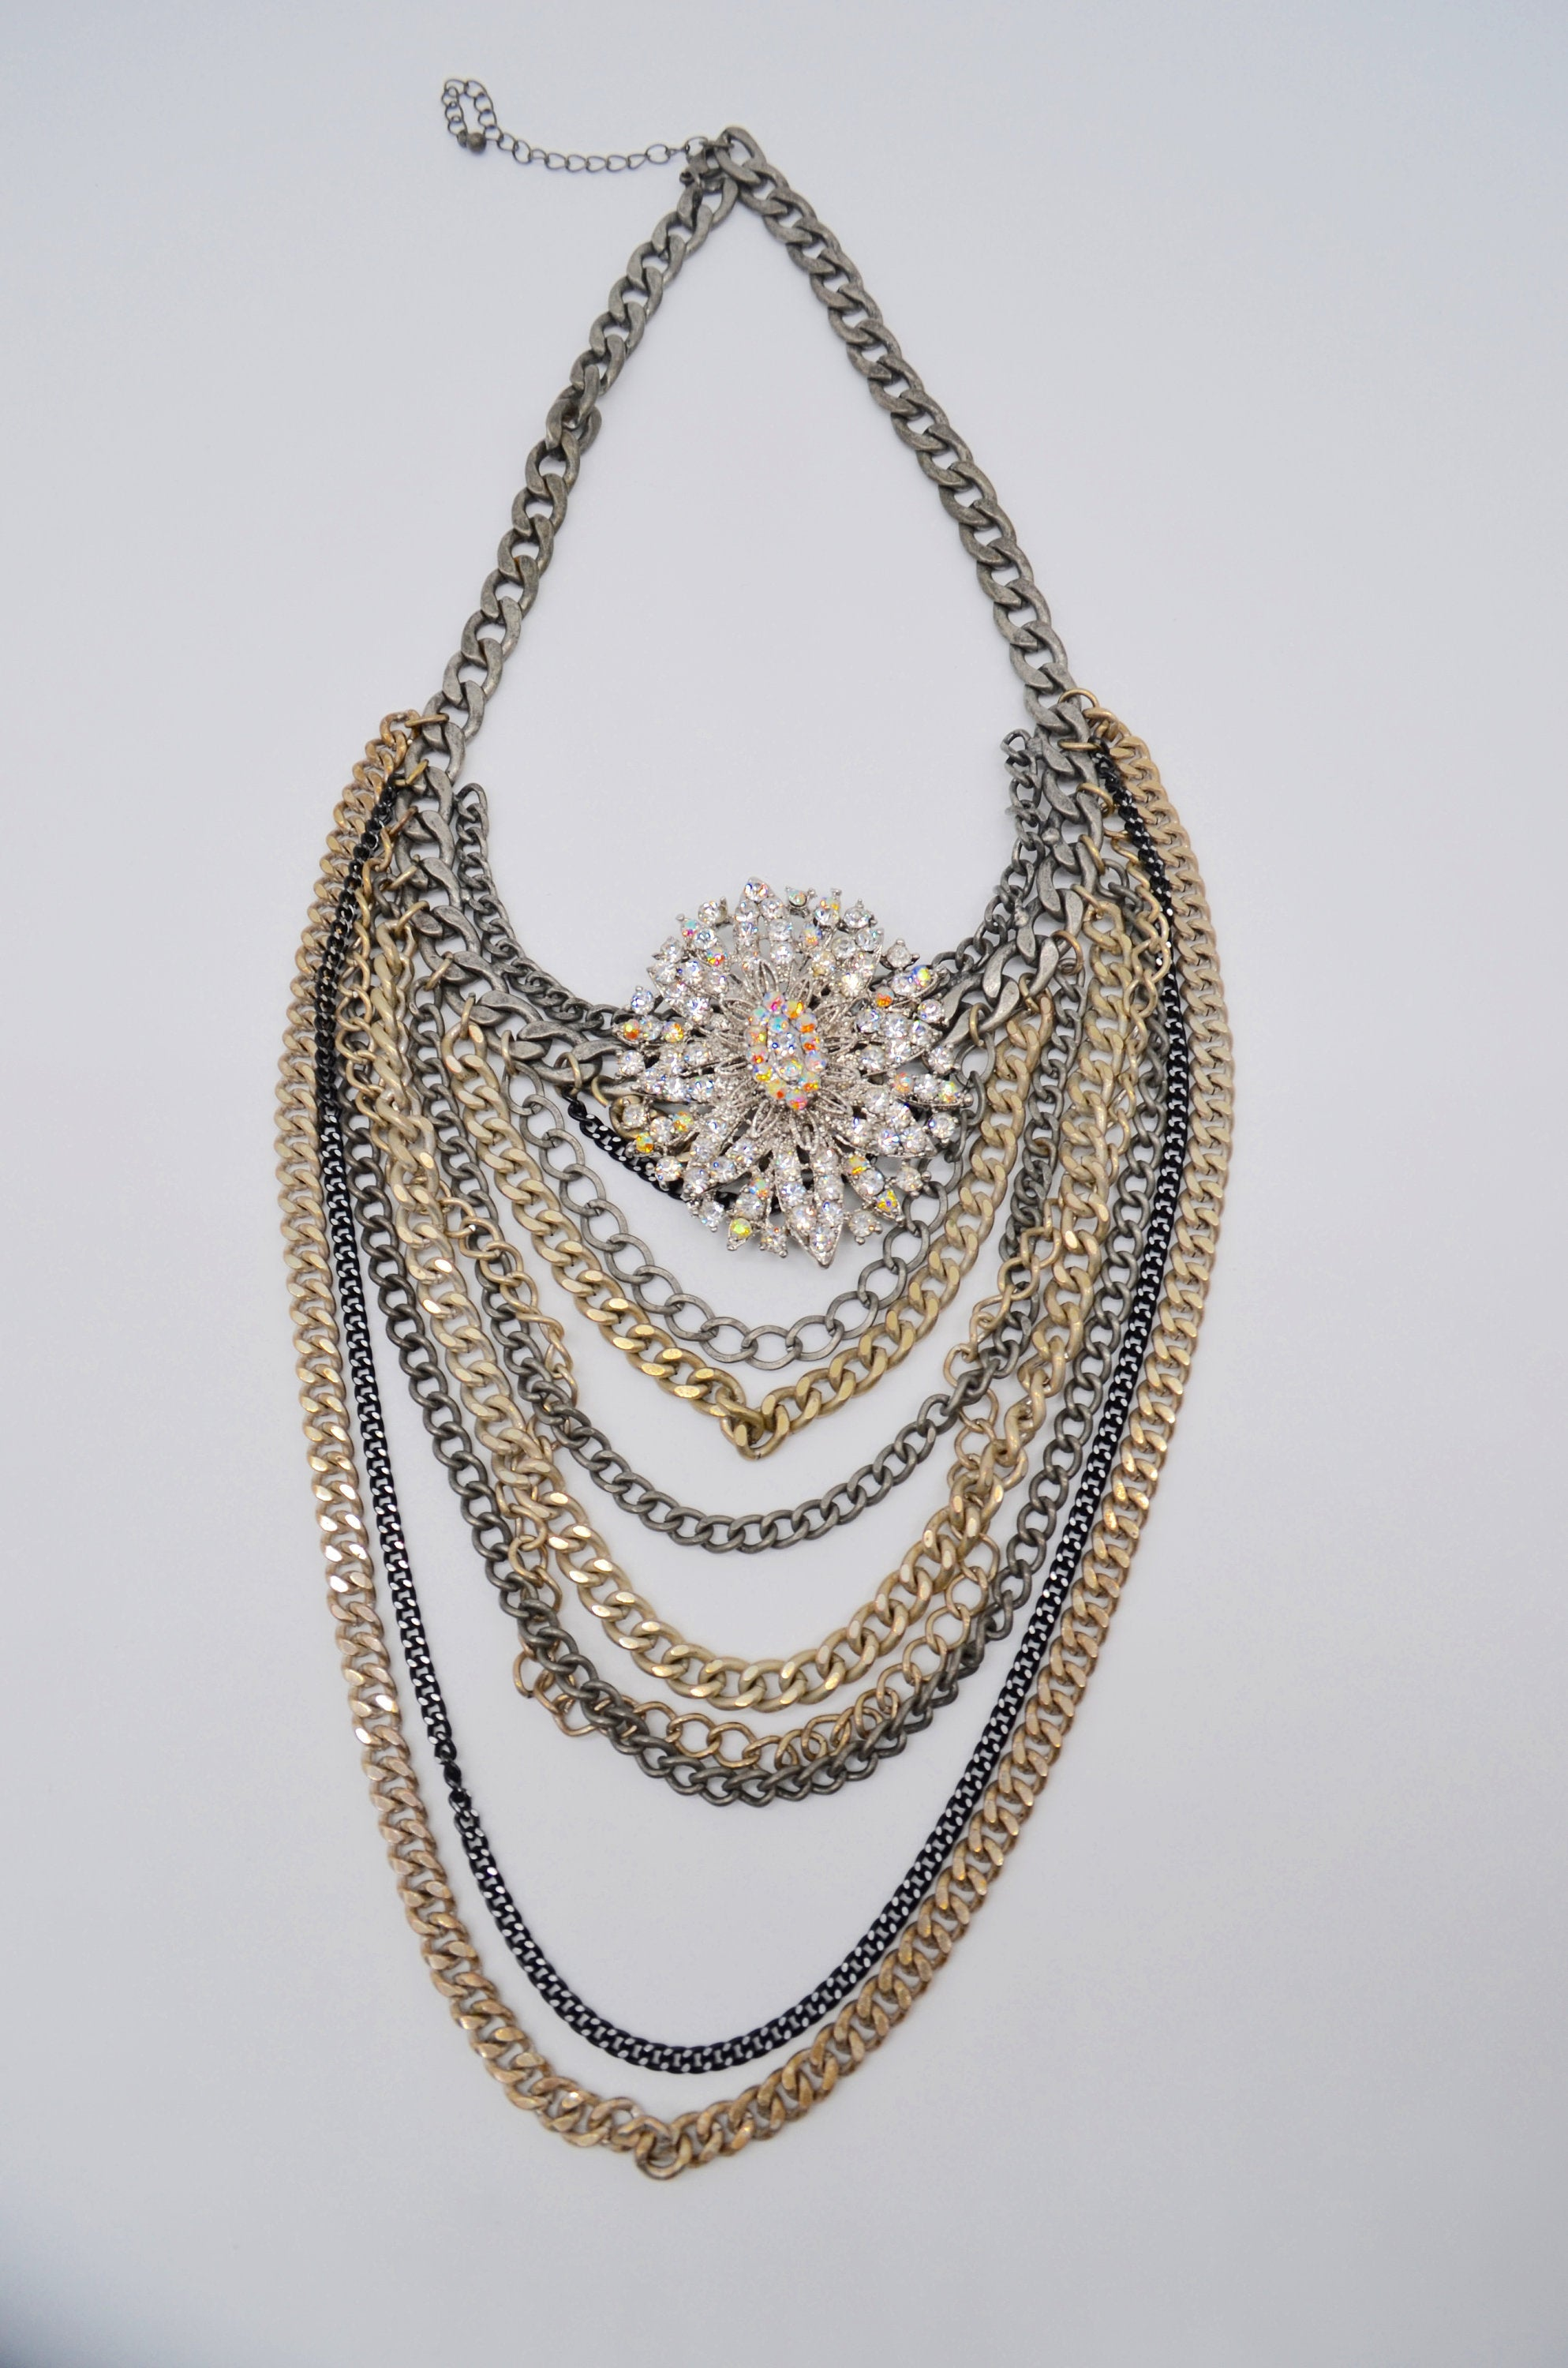 Statement Multi Layered Lengths Of Chain Antique Silver Necklace With Filigree Brooch Rockstar